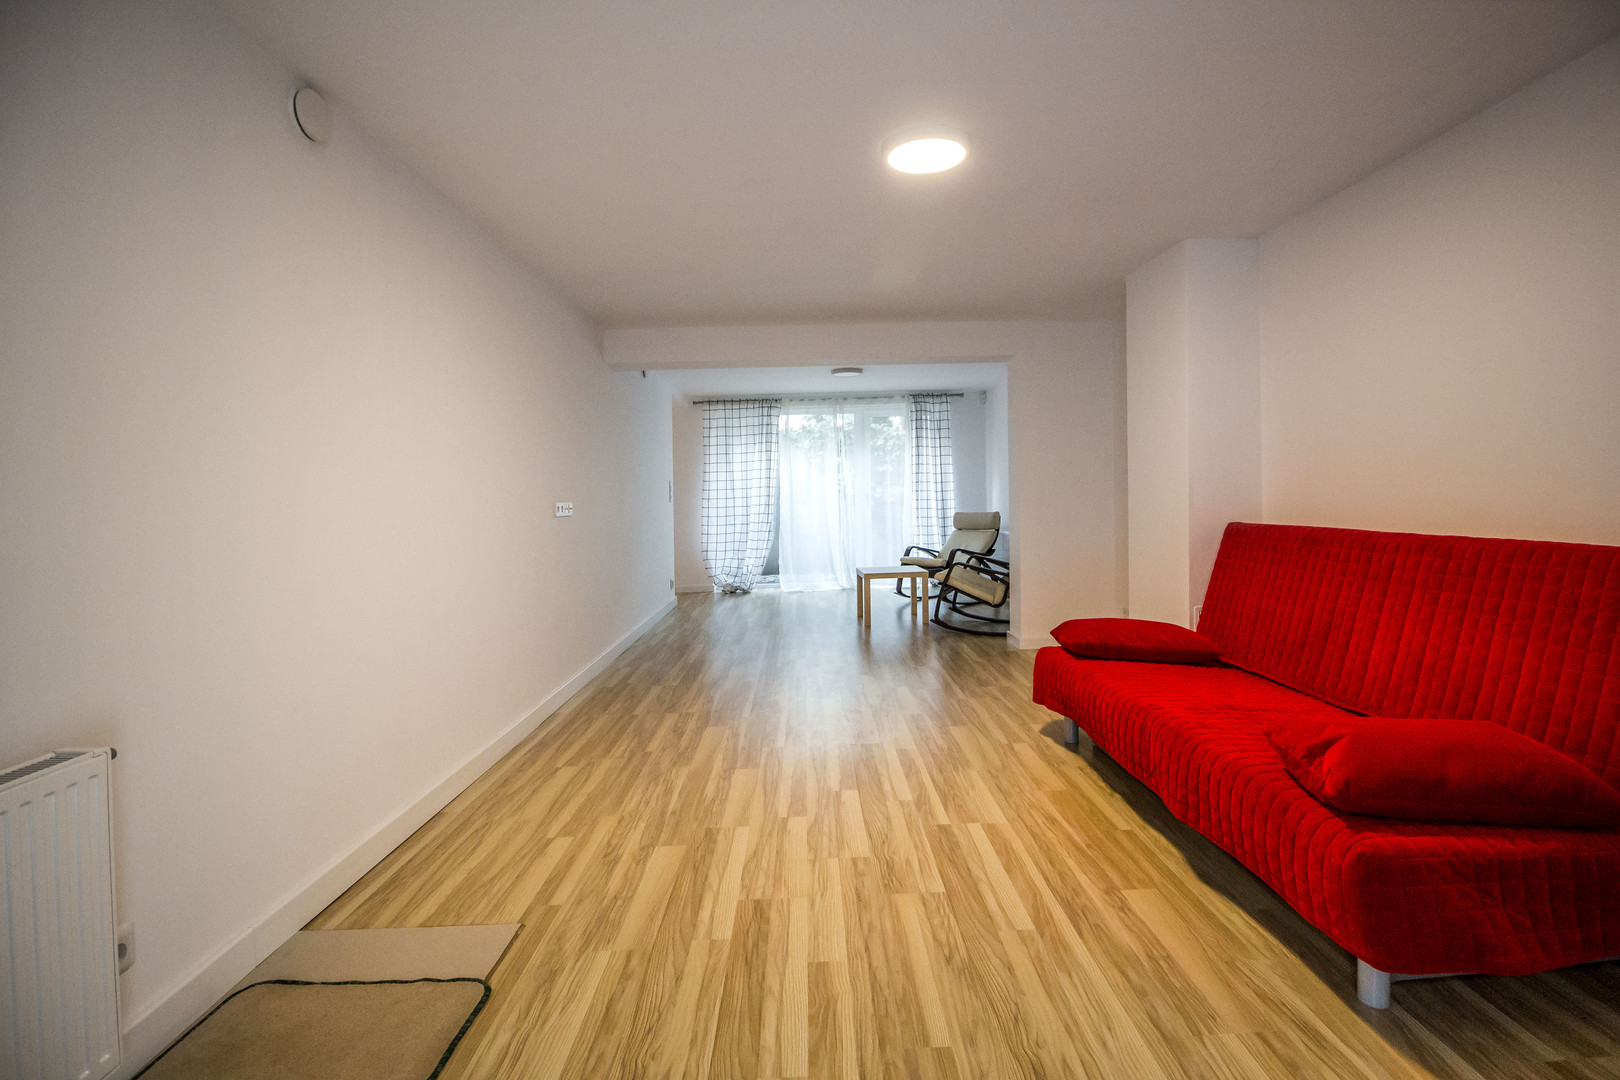 House for rent Poznan Poland (6 of 31).j